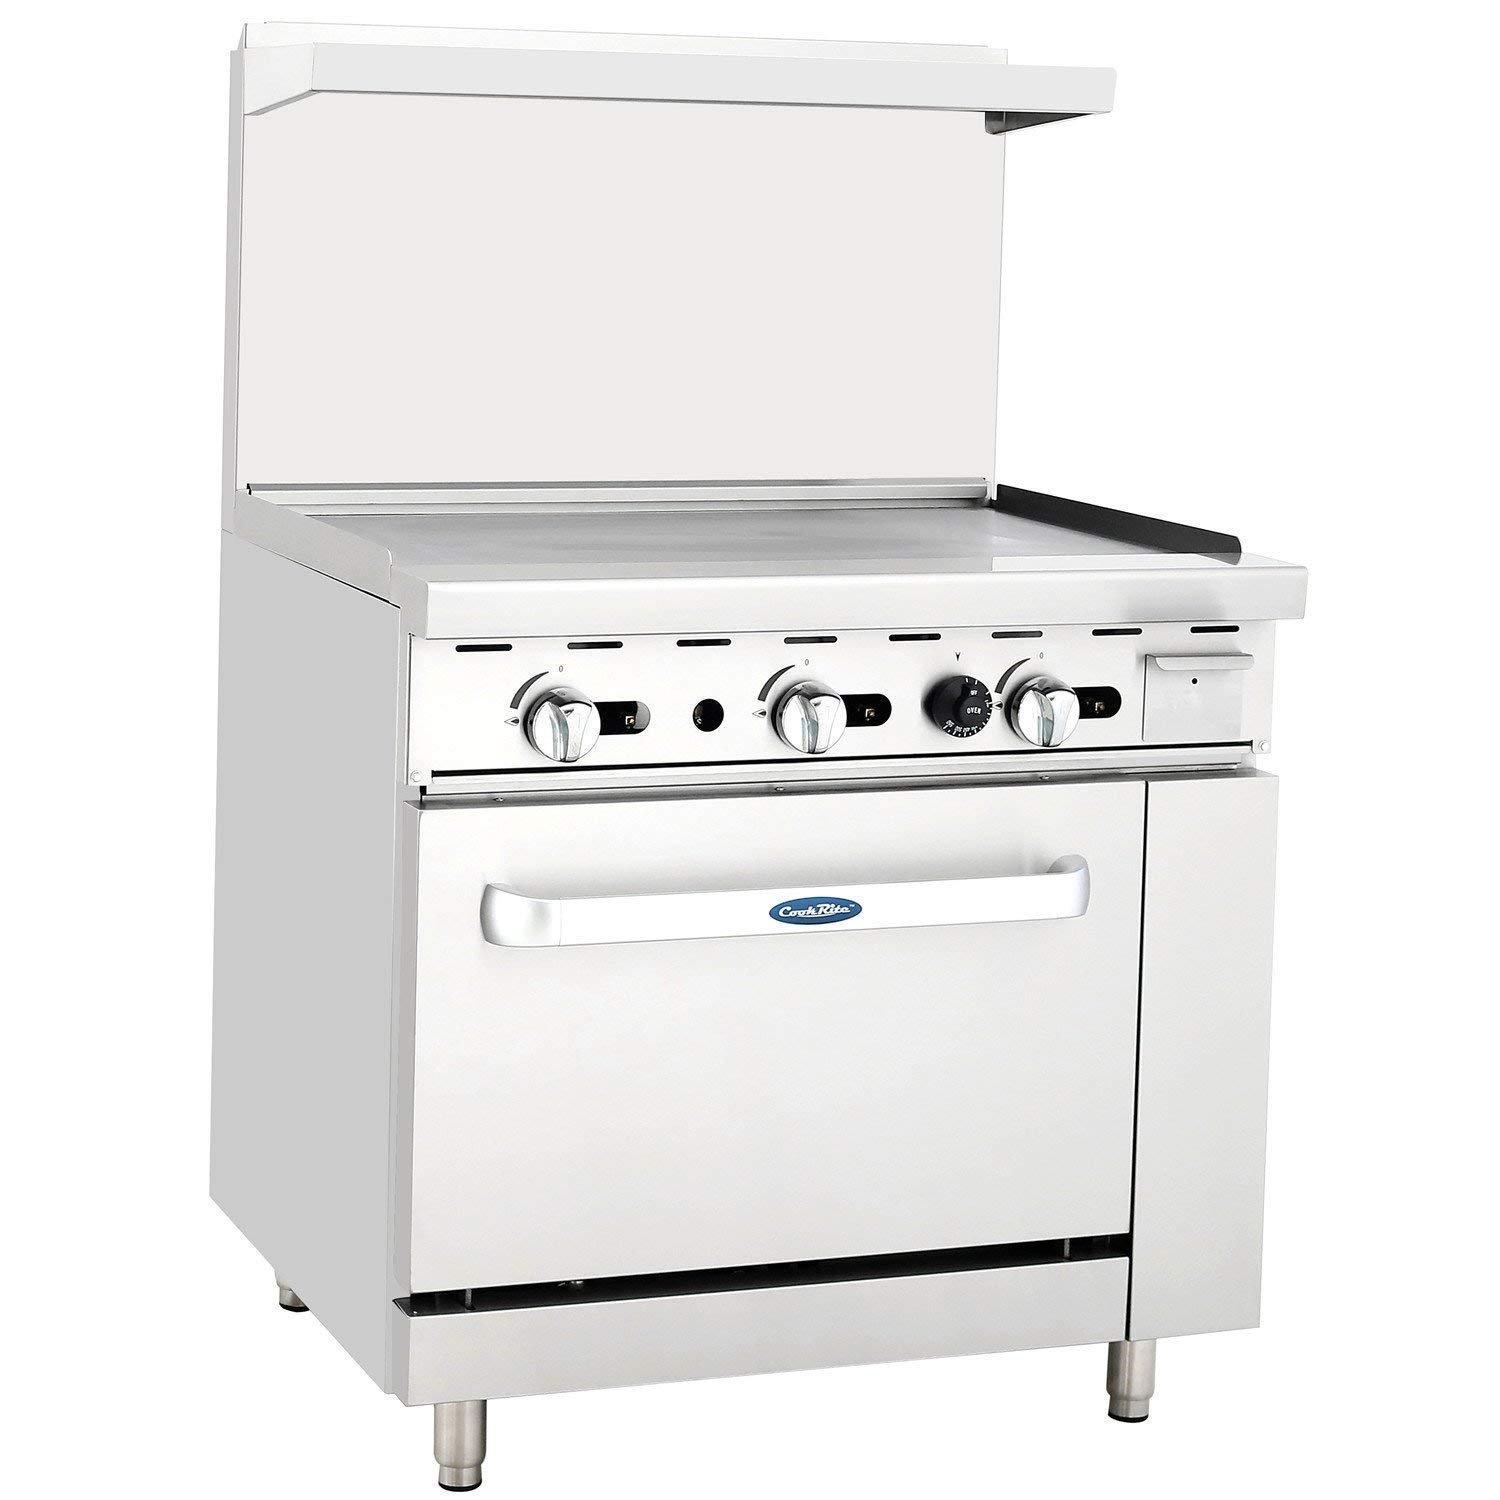 """ATOSA US ATO-36G Commercial Restaurant Griddle 36"""" Stainless Steel With Oven Cooks Standard Natural Gas Range - 102,000 BTU"""